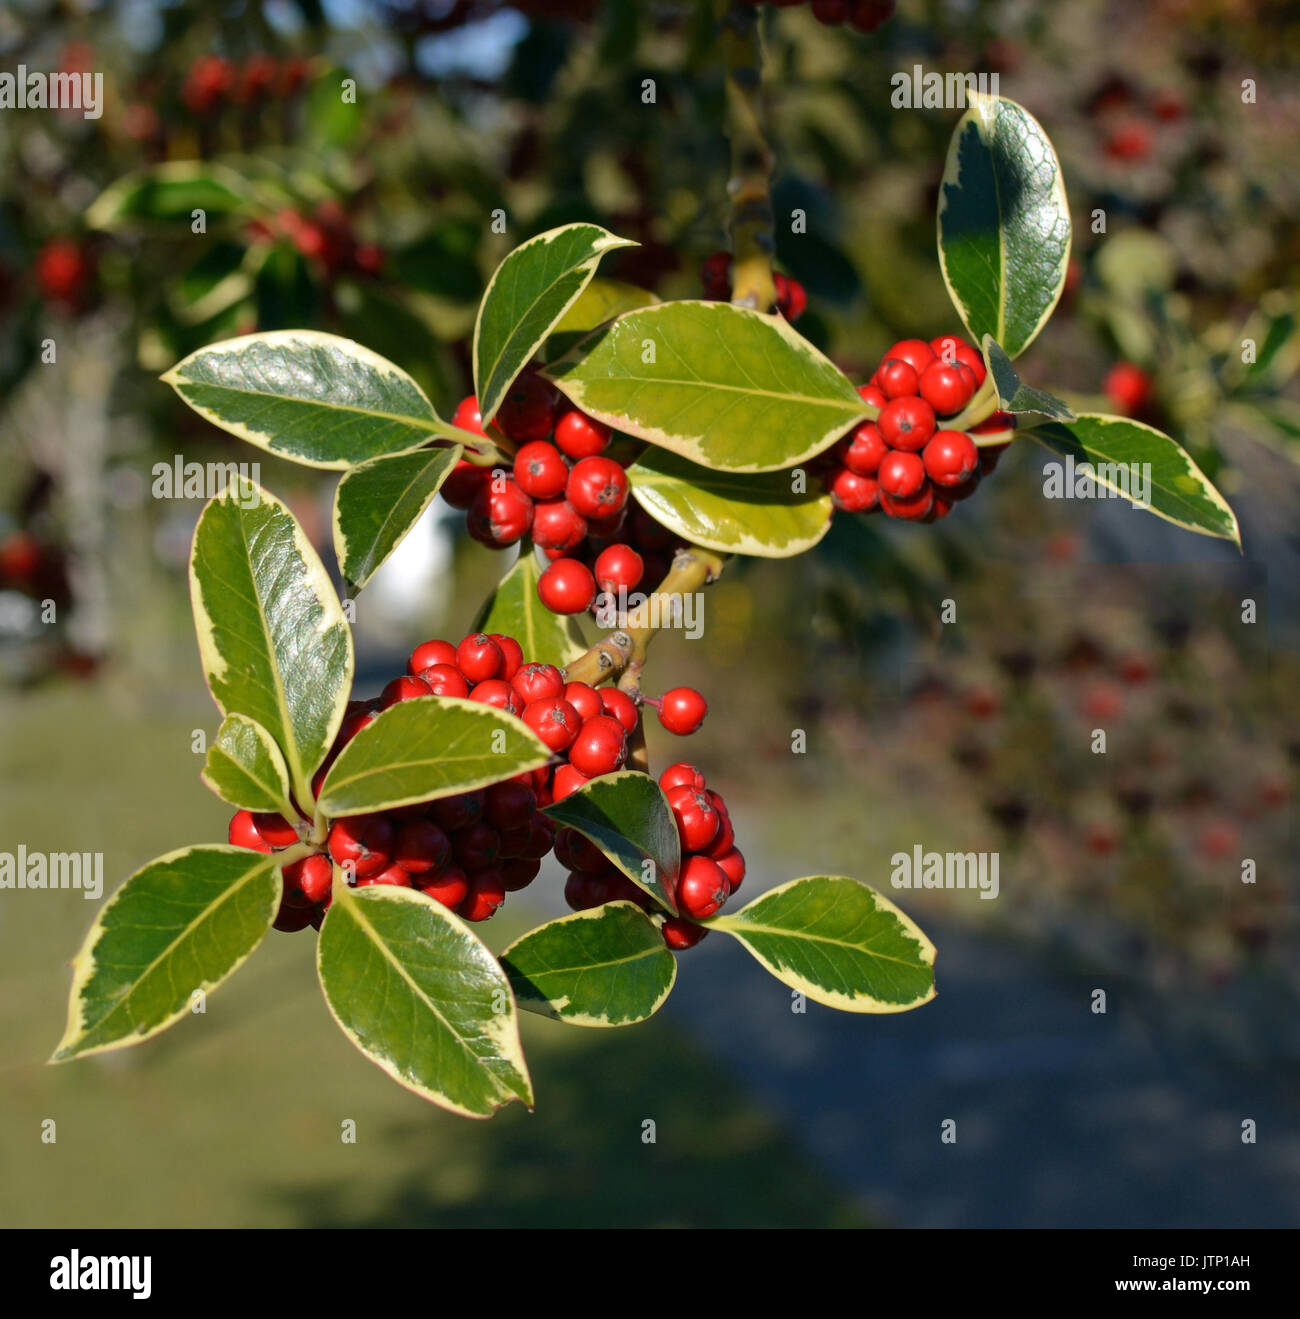 Good Christmas Holly Tree Part - 13: Closeup View Of Christmas Holly Tree With Clusters Of Red Berries And  Variegated Green Leaves And